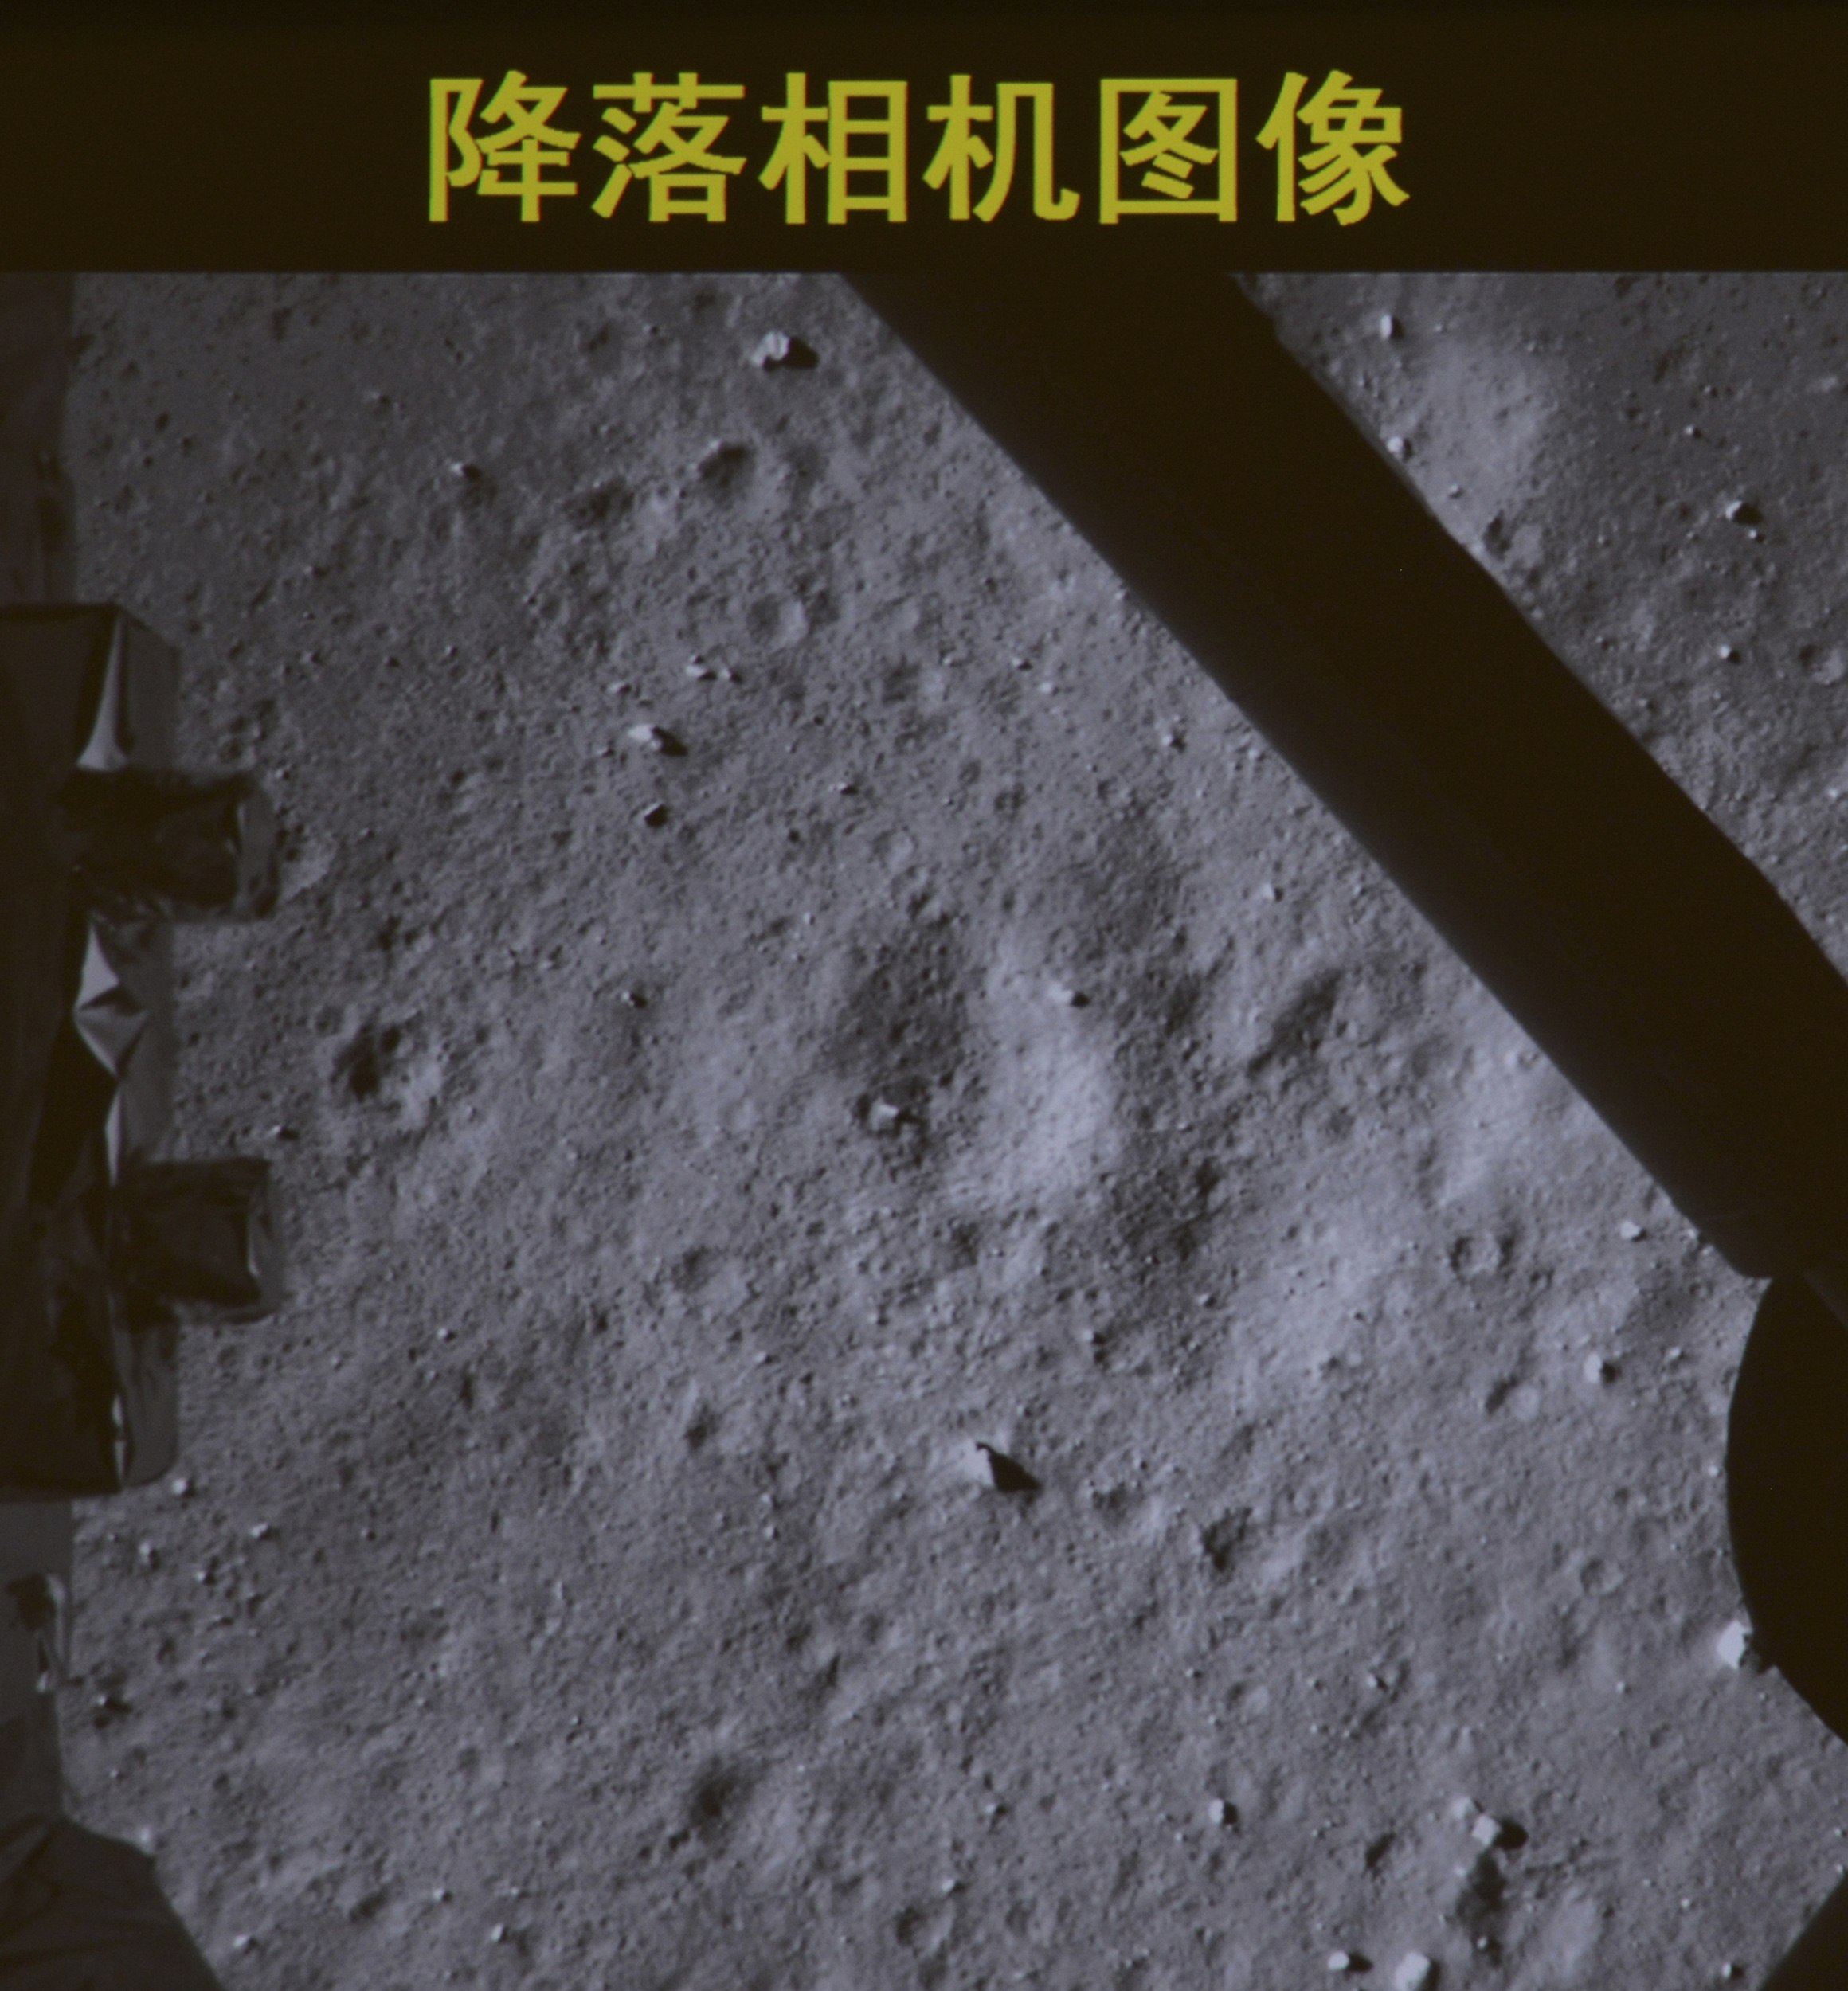 China lands Unmanned Spacecraft on the Moon